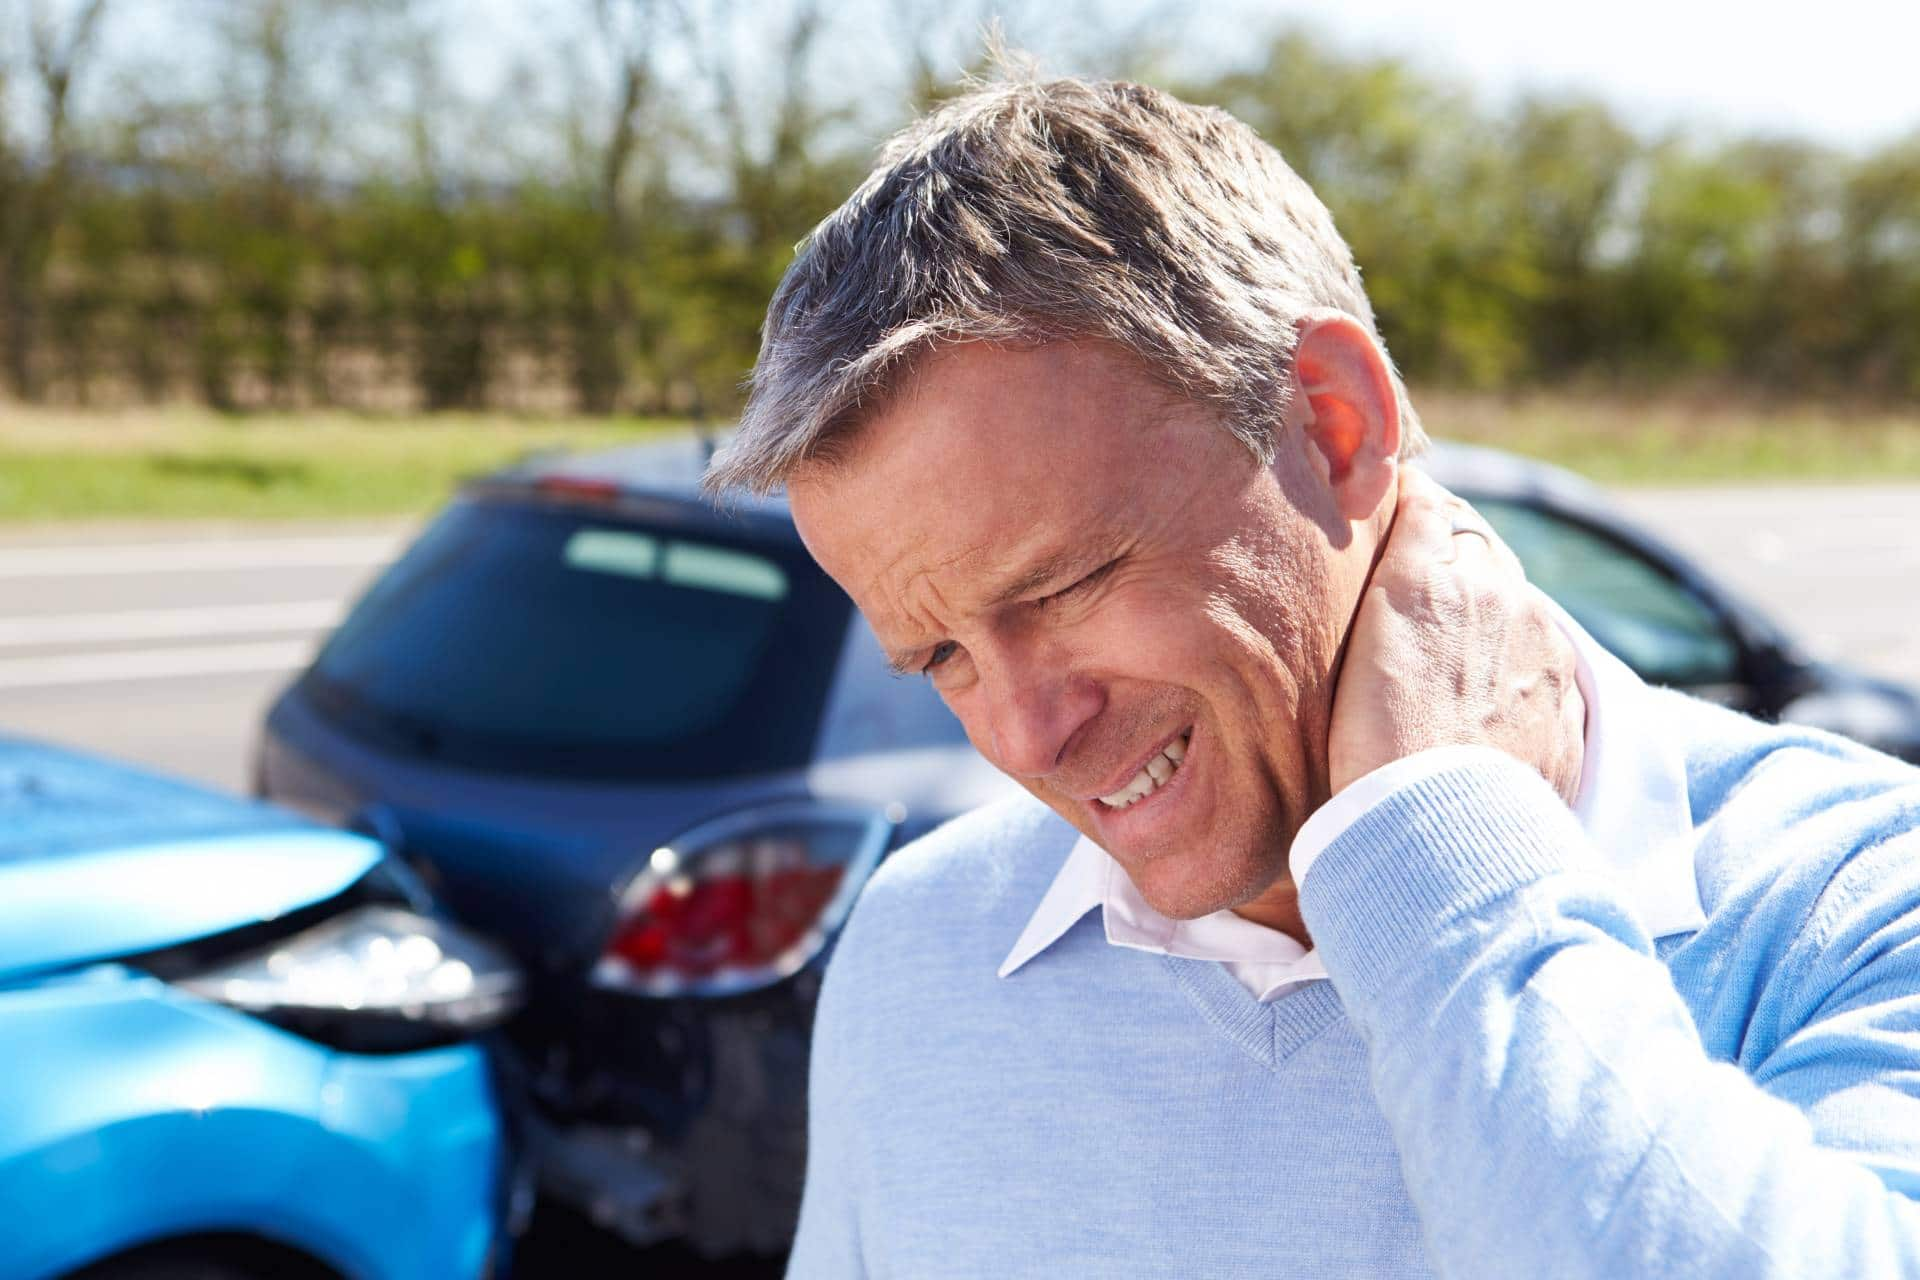 Injured in a car accident? Schedule a free consulation with the Angell Law Firm.